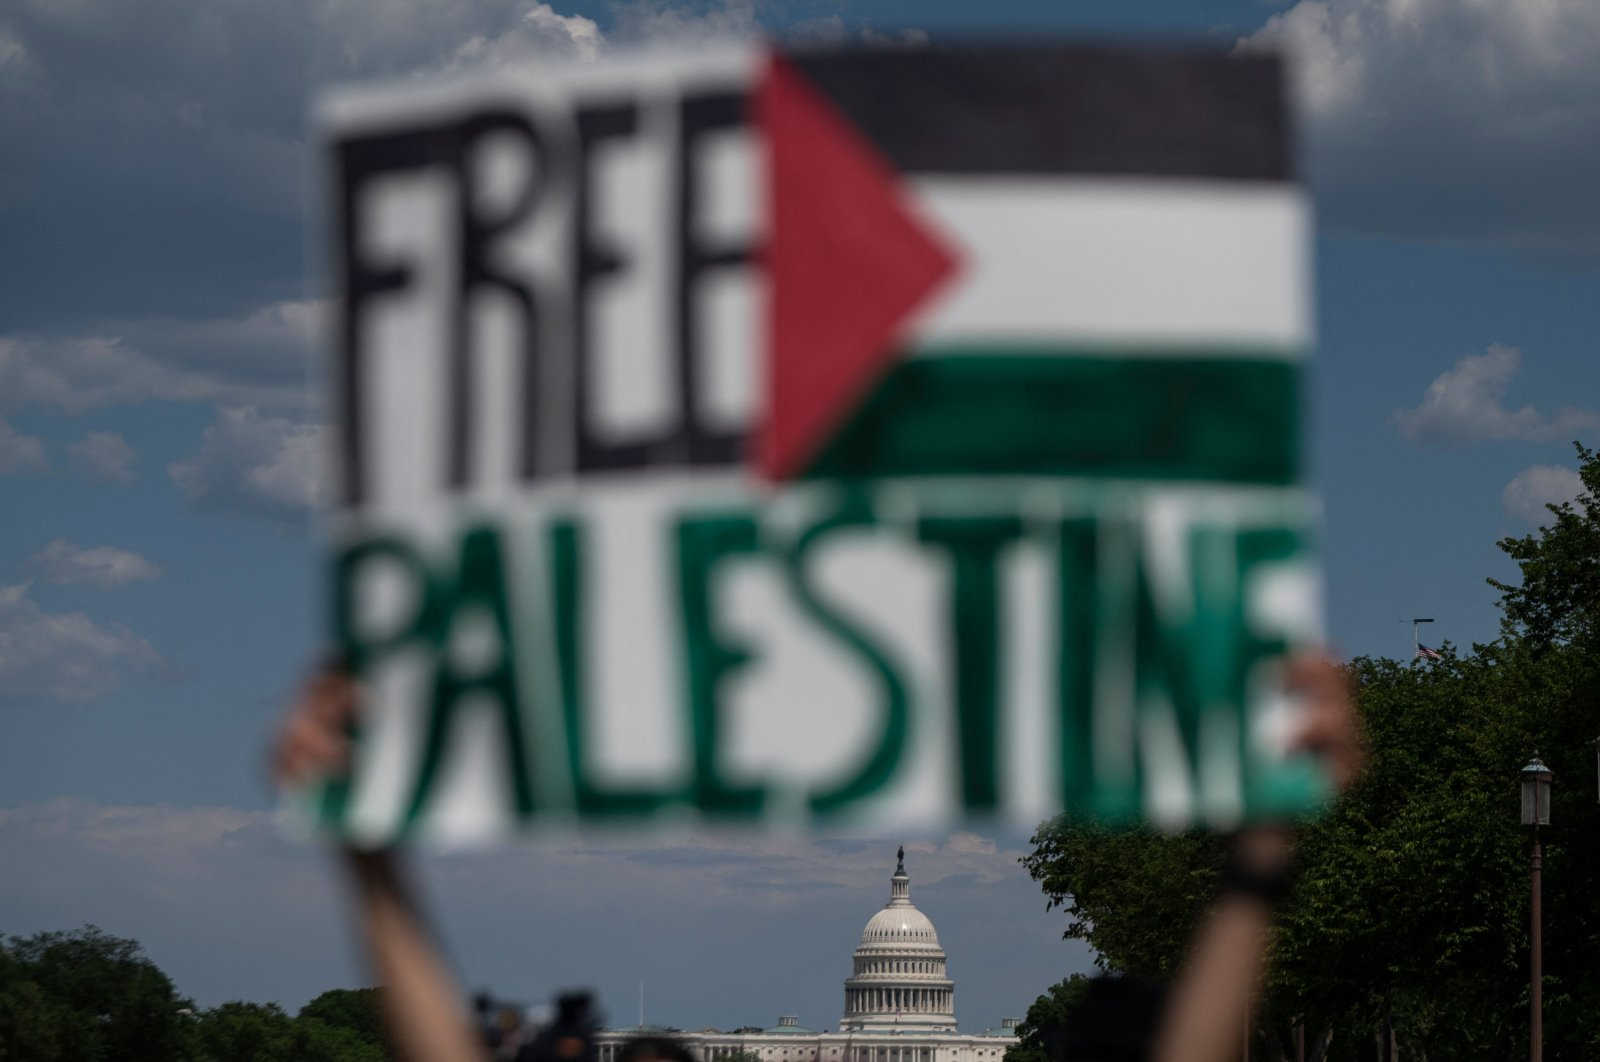 An activist holds up a sign with the U.S. Capitol in the background, in support of Palestine, near the Washington Monument in Washington, D.C., U.S., May 15, 2021. (AFP Photo)